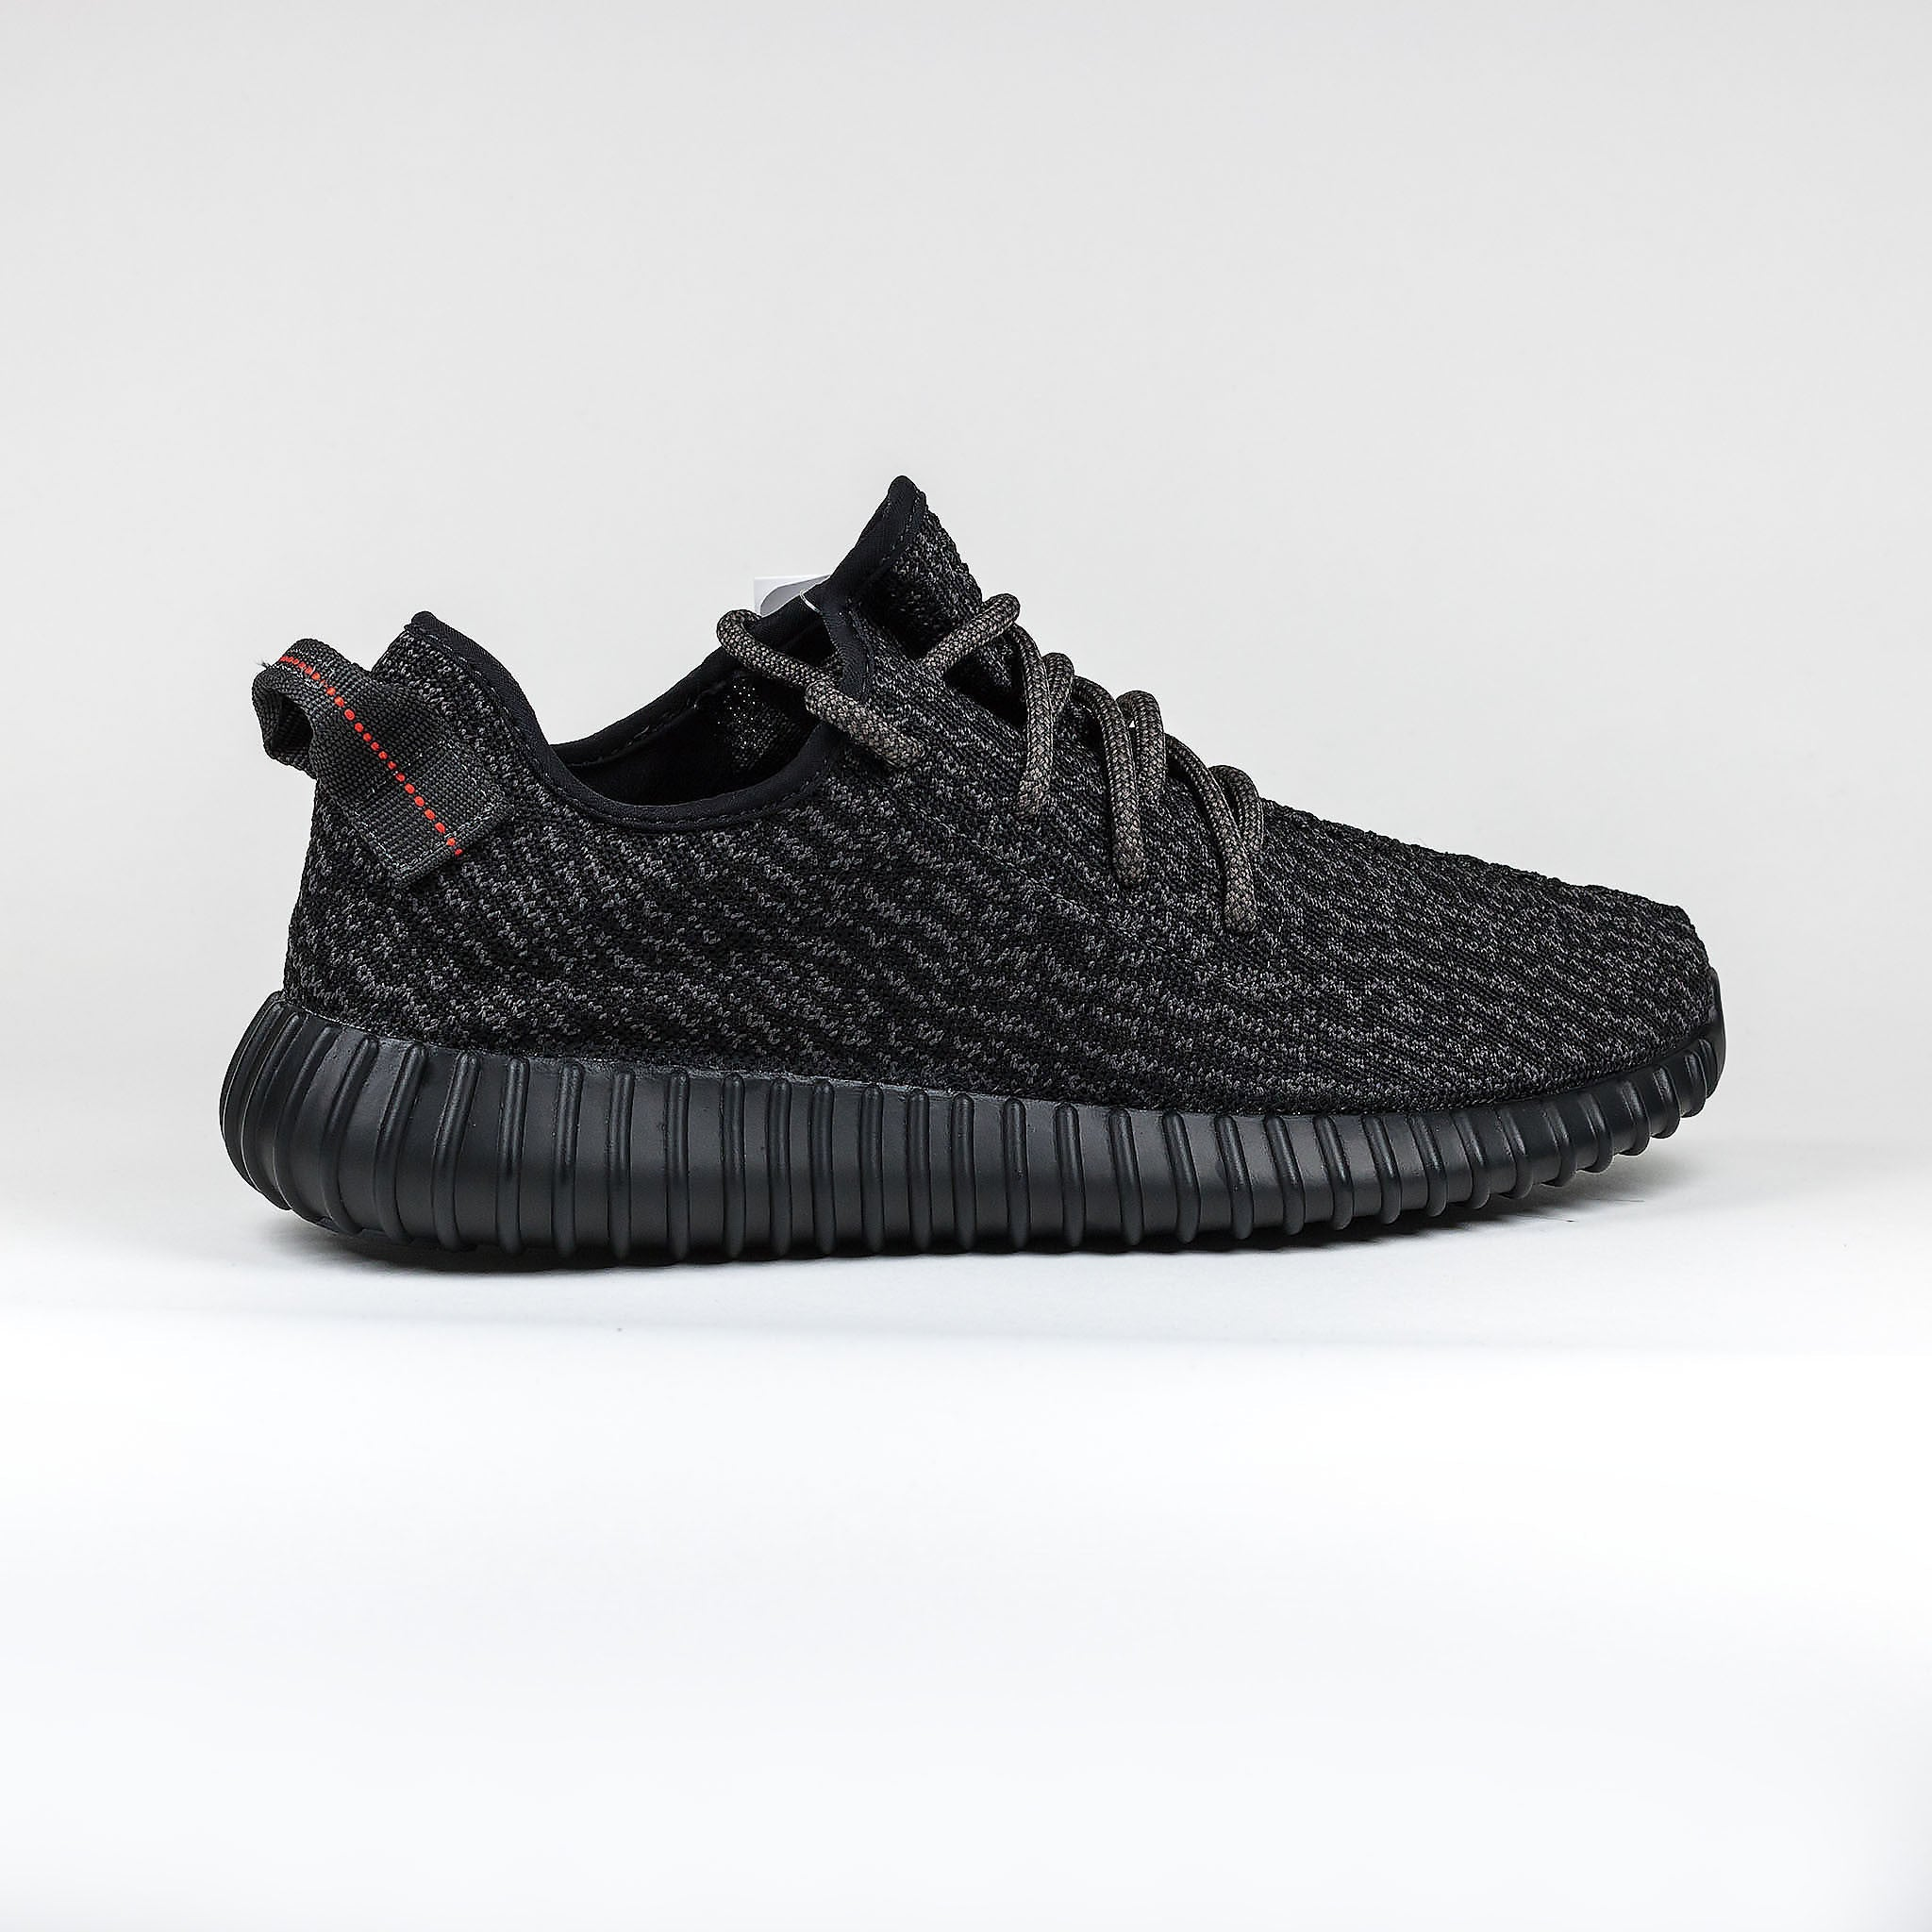 sports shoes e7daf 9b269 Yeezy Boost 350 V1 1.0 2015 Pirate Black